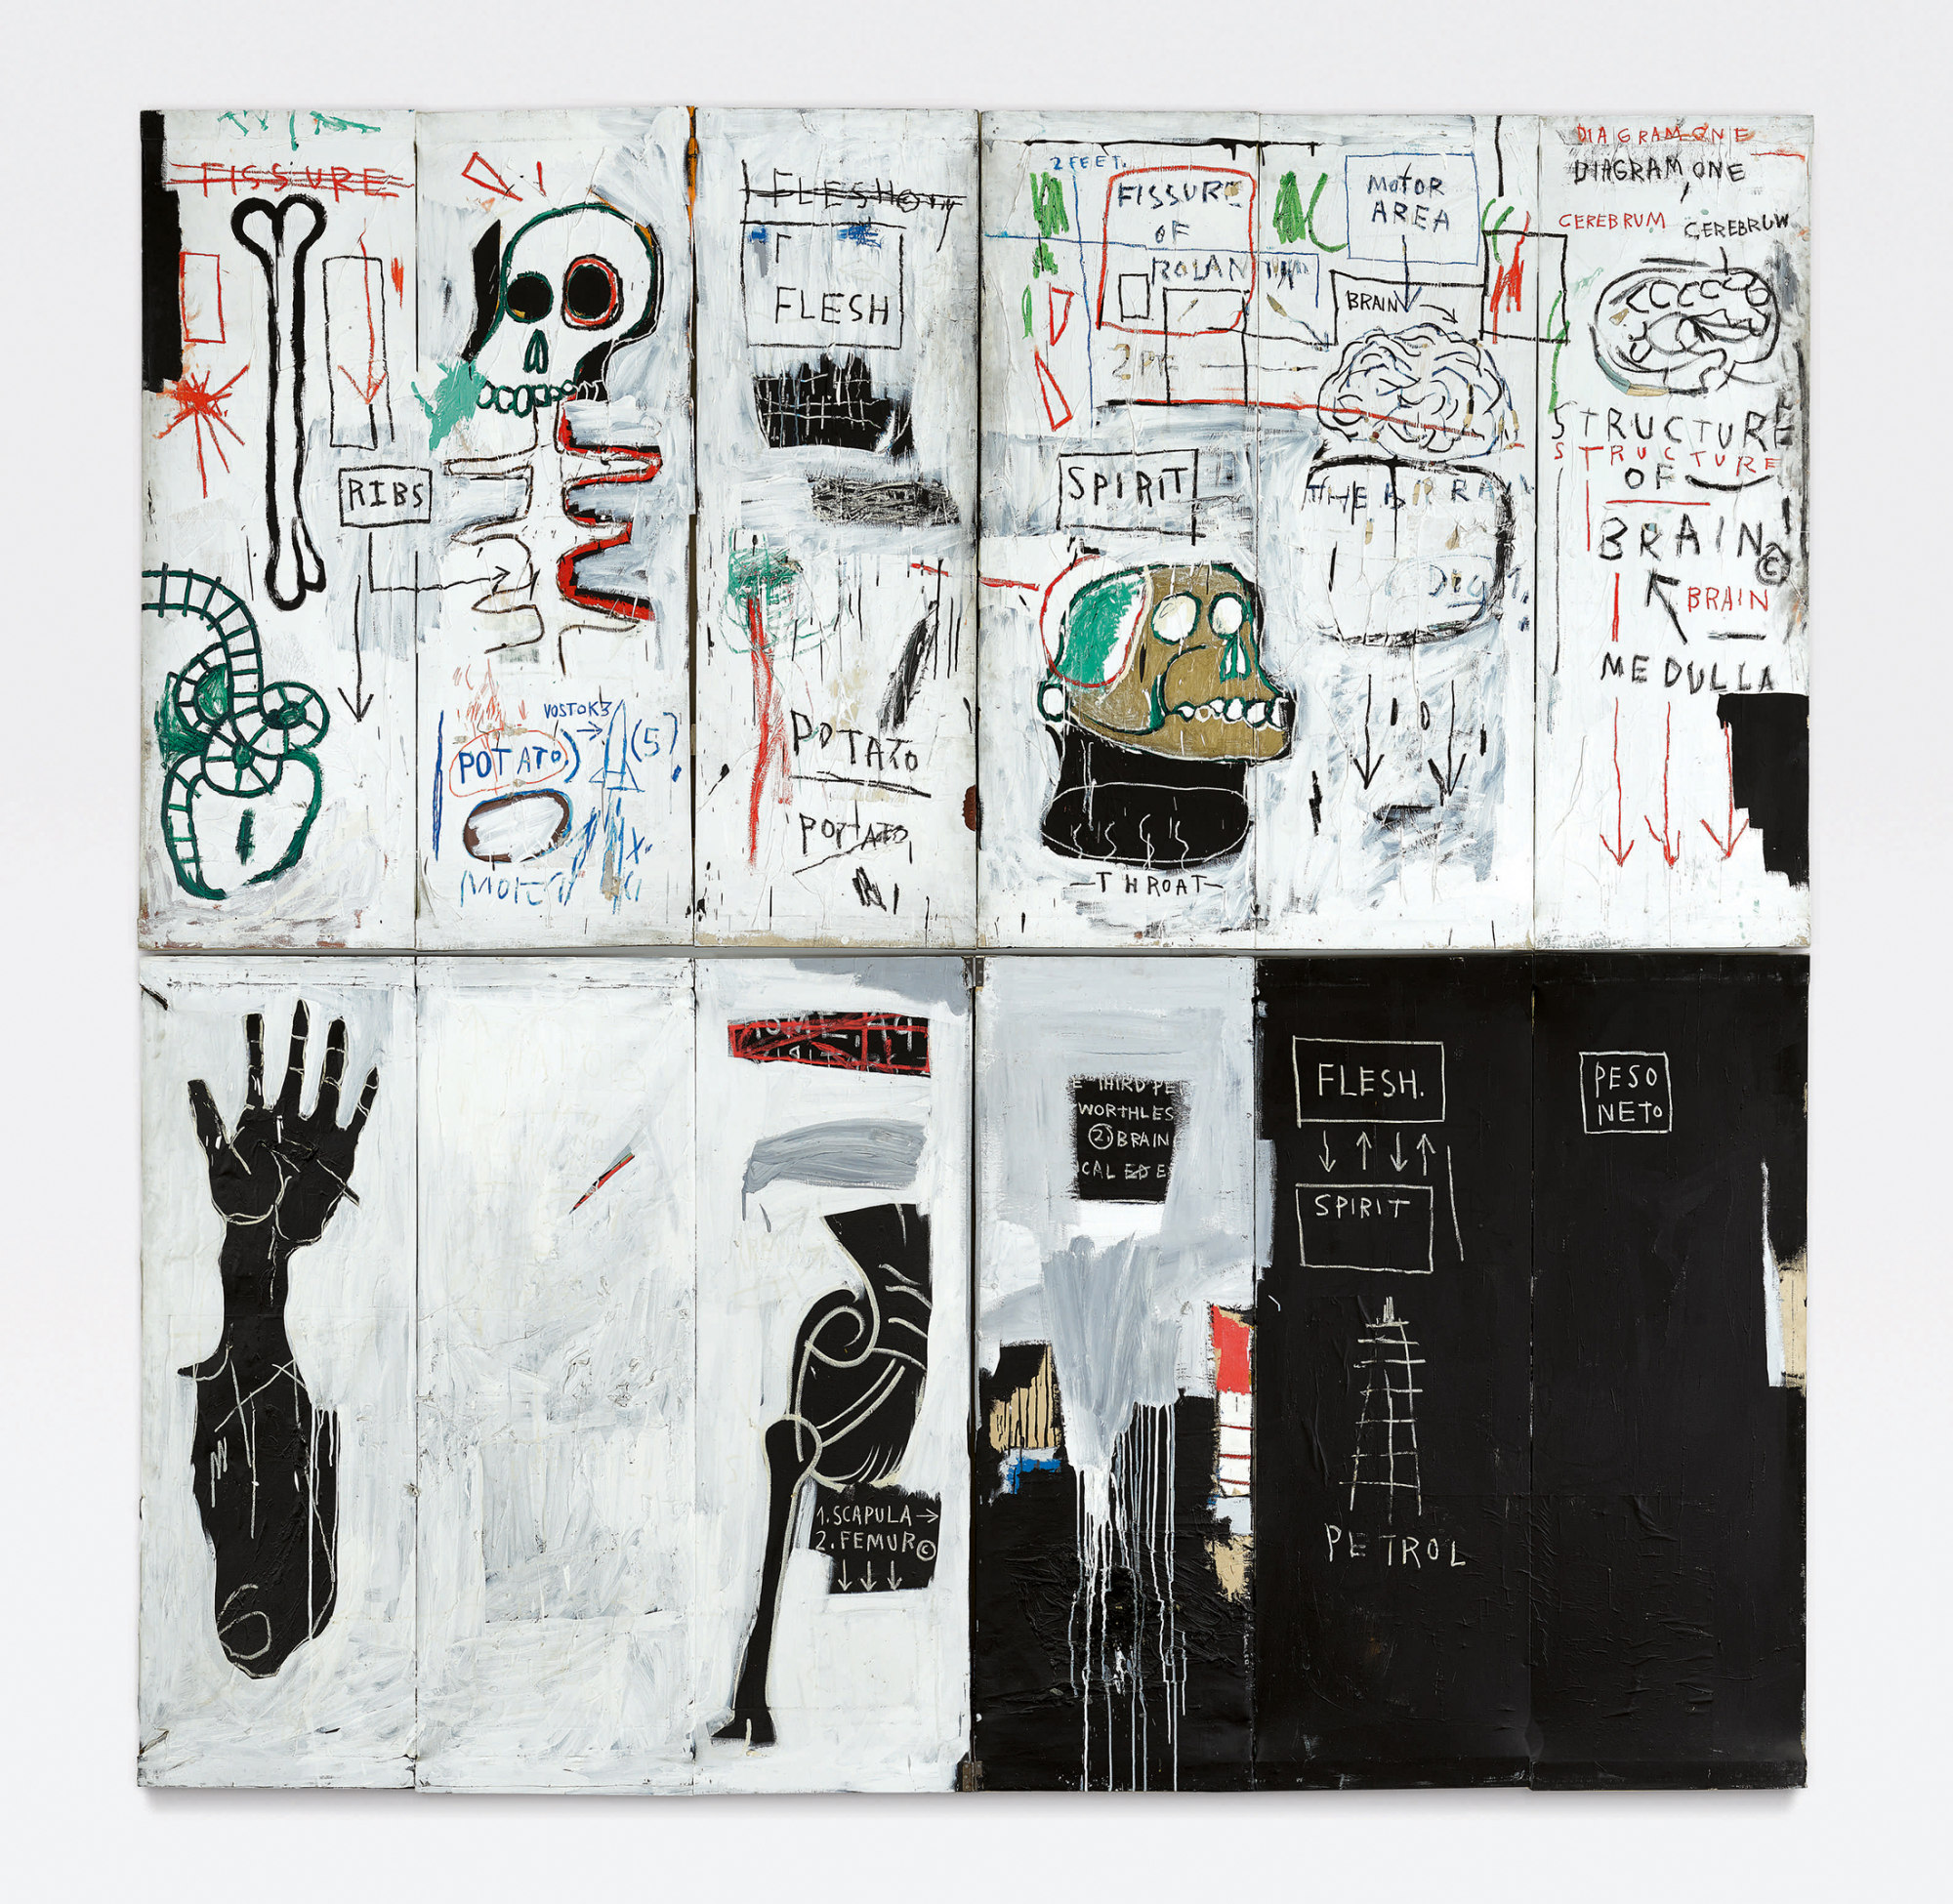 Flesh and Spirit di Jean-Michel Basquiat